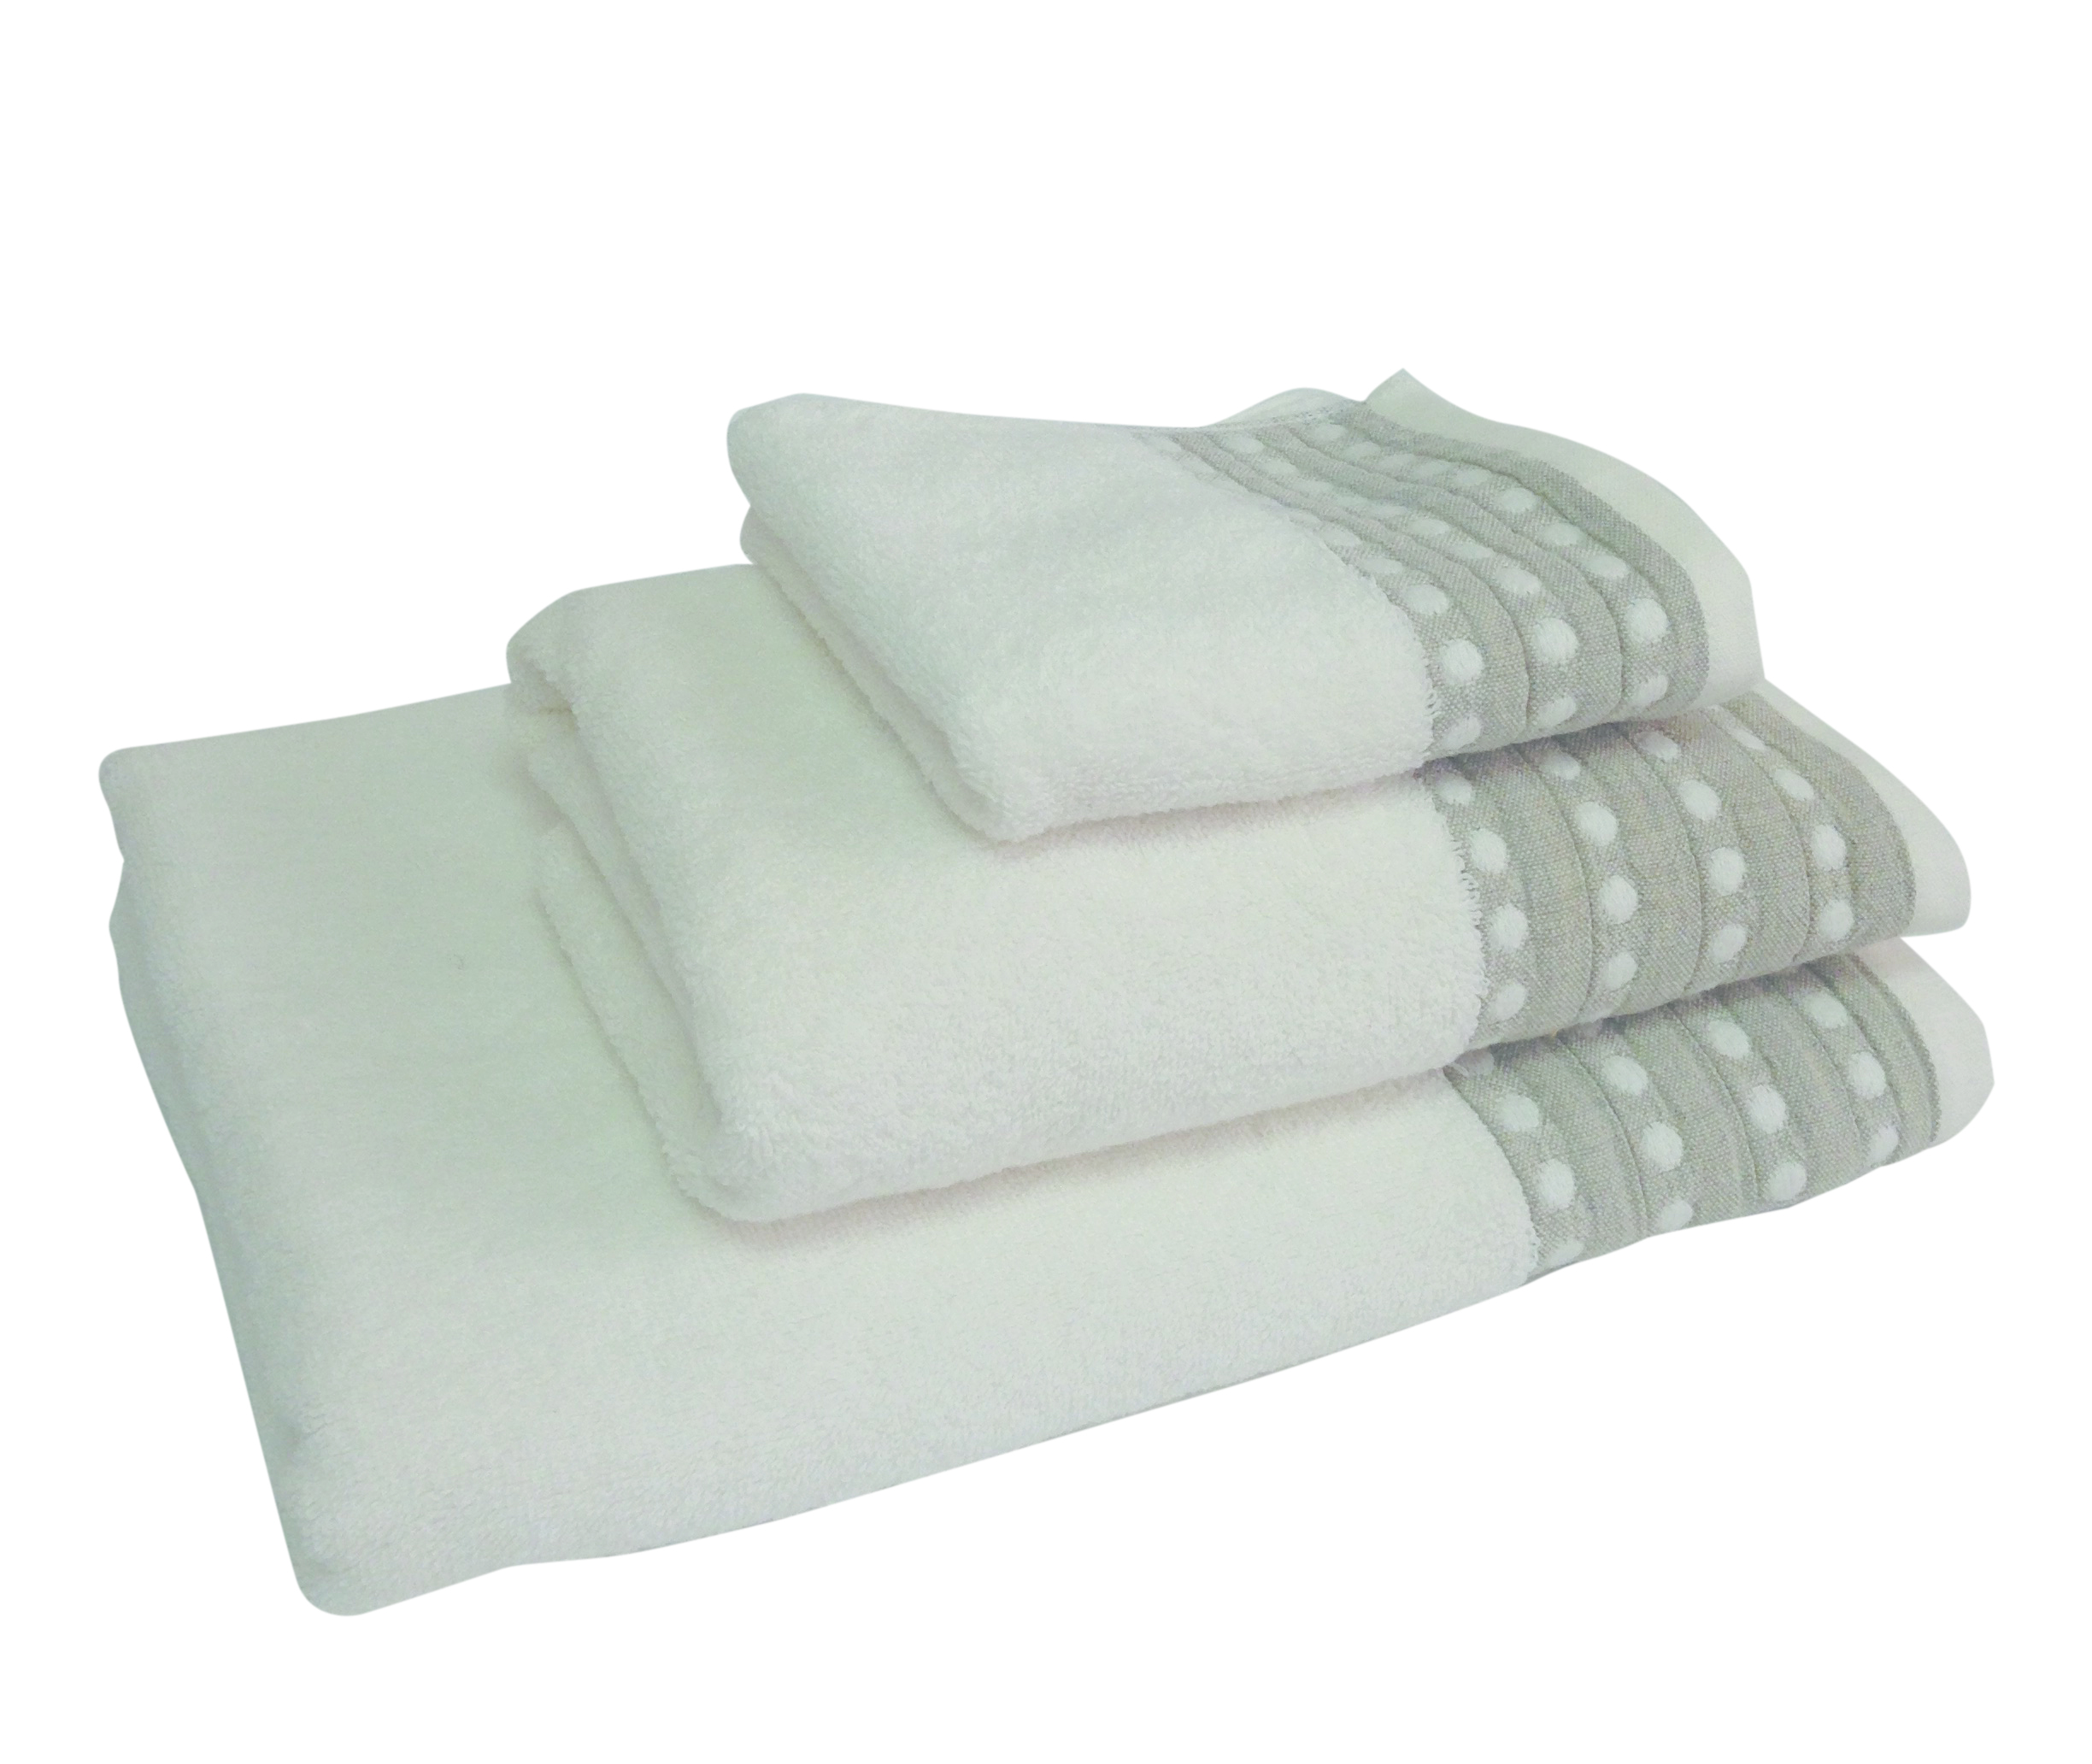 Spoth Ivory Bath Linen 95% Egyptian Cotton 5 % Linen. Face Cloth, Finger Towel, Guest Towel, Bath Towel, Bath Sheet